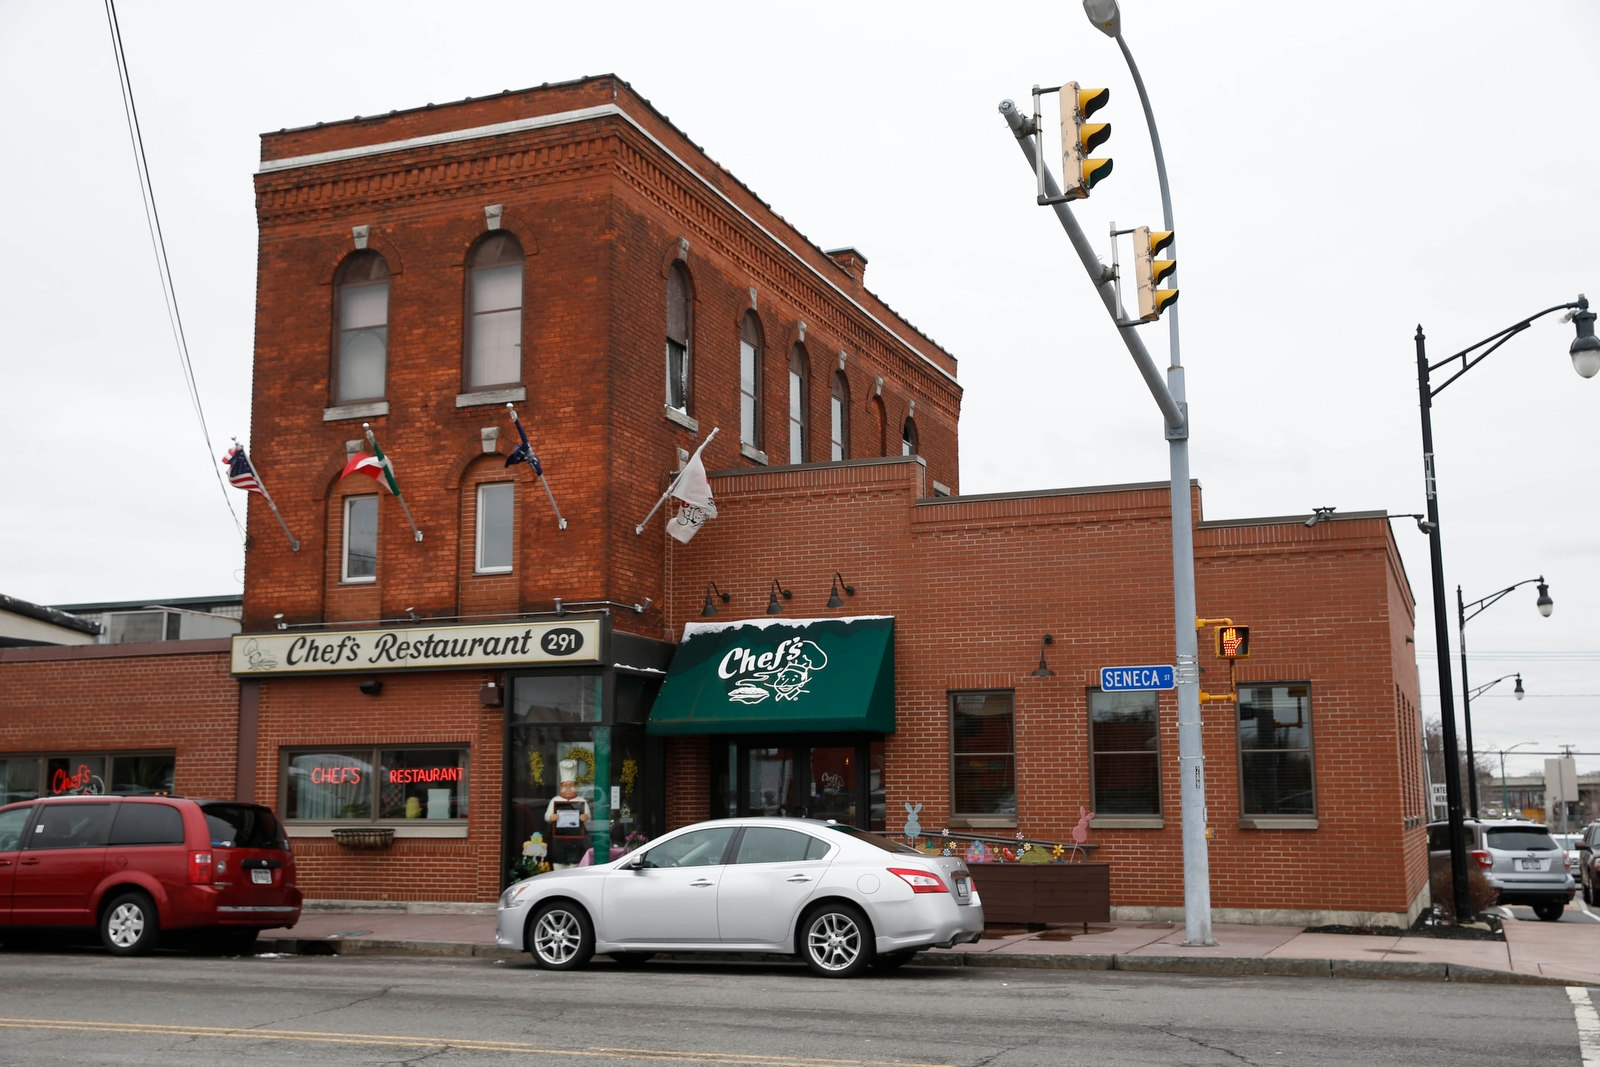 Chef's Restaurant, 291 Seneca St., opened in 1923.